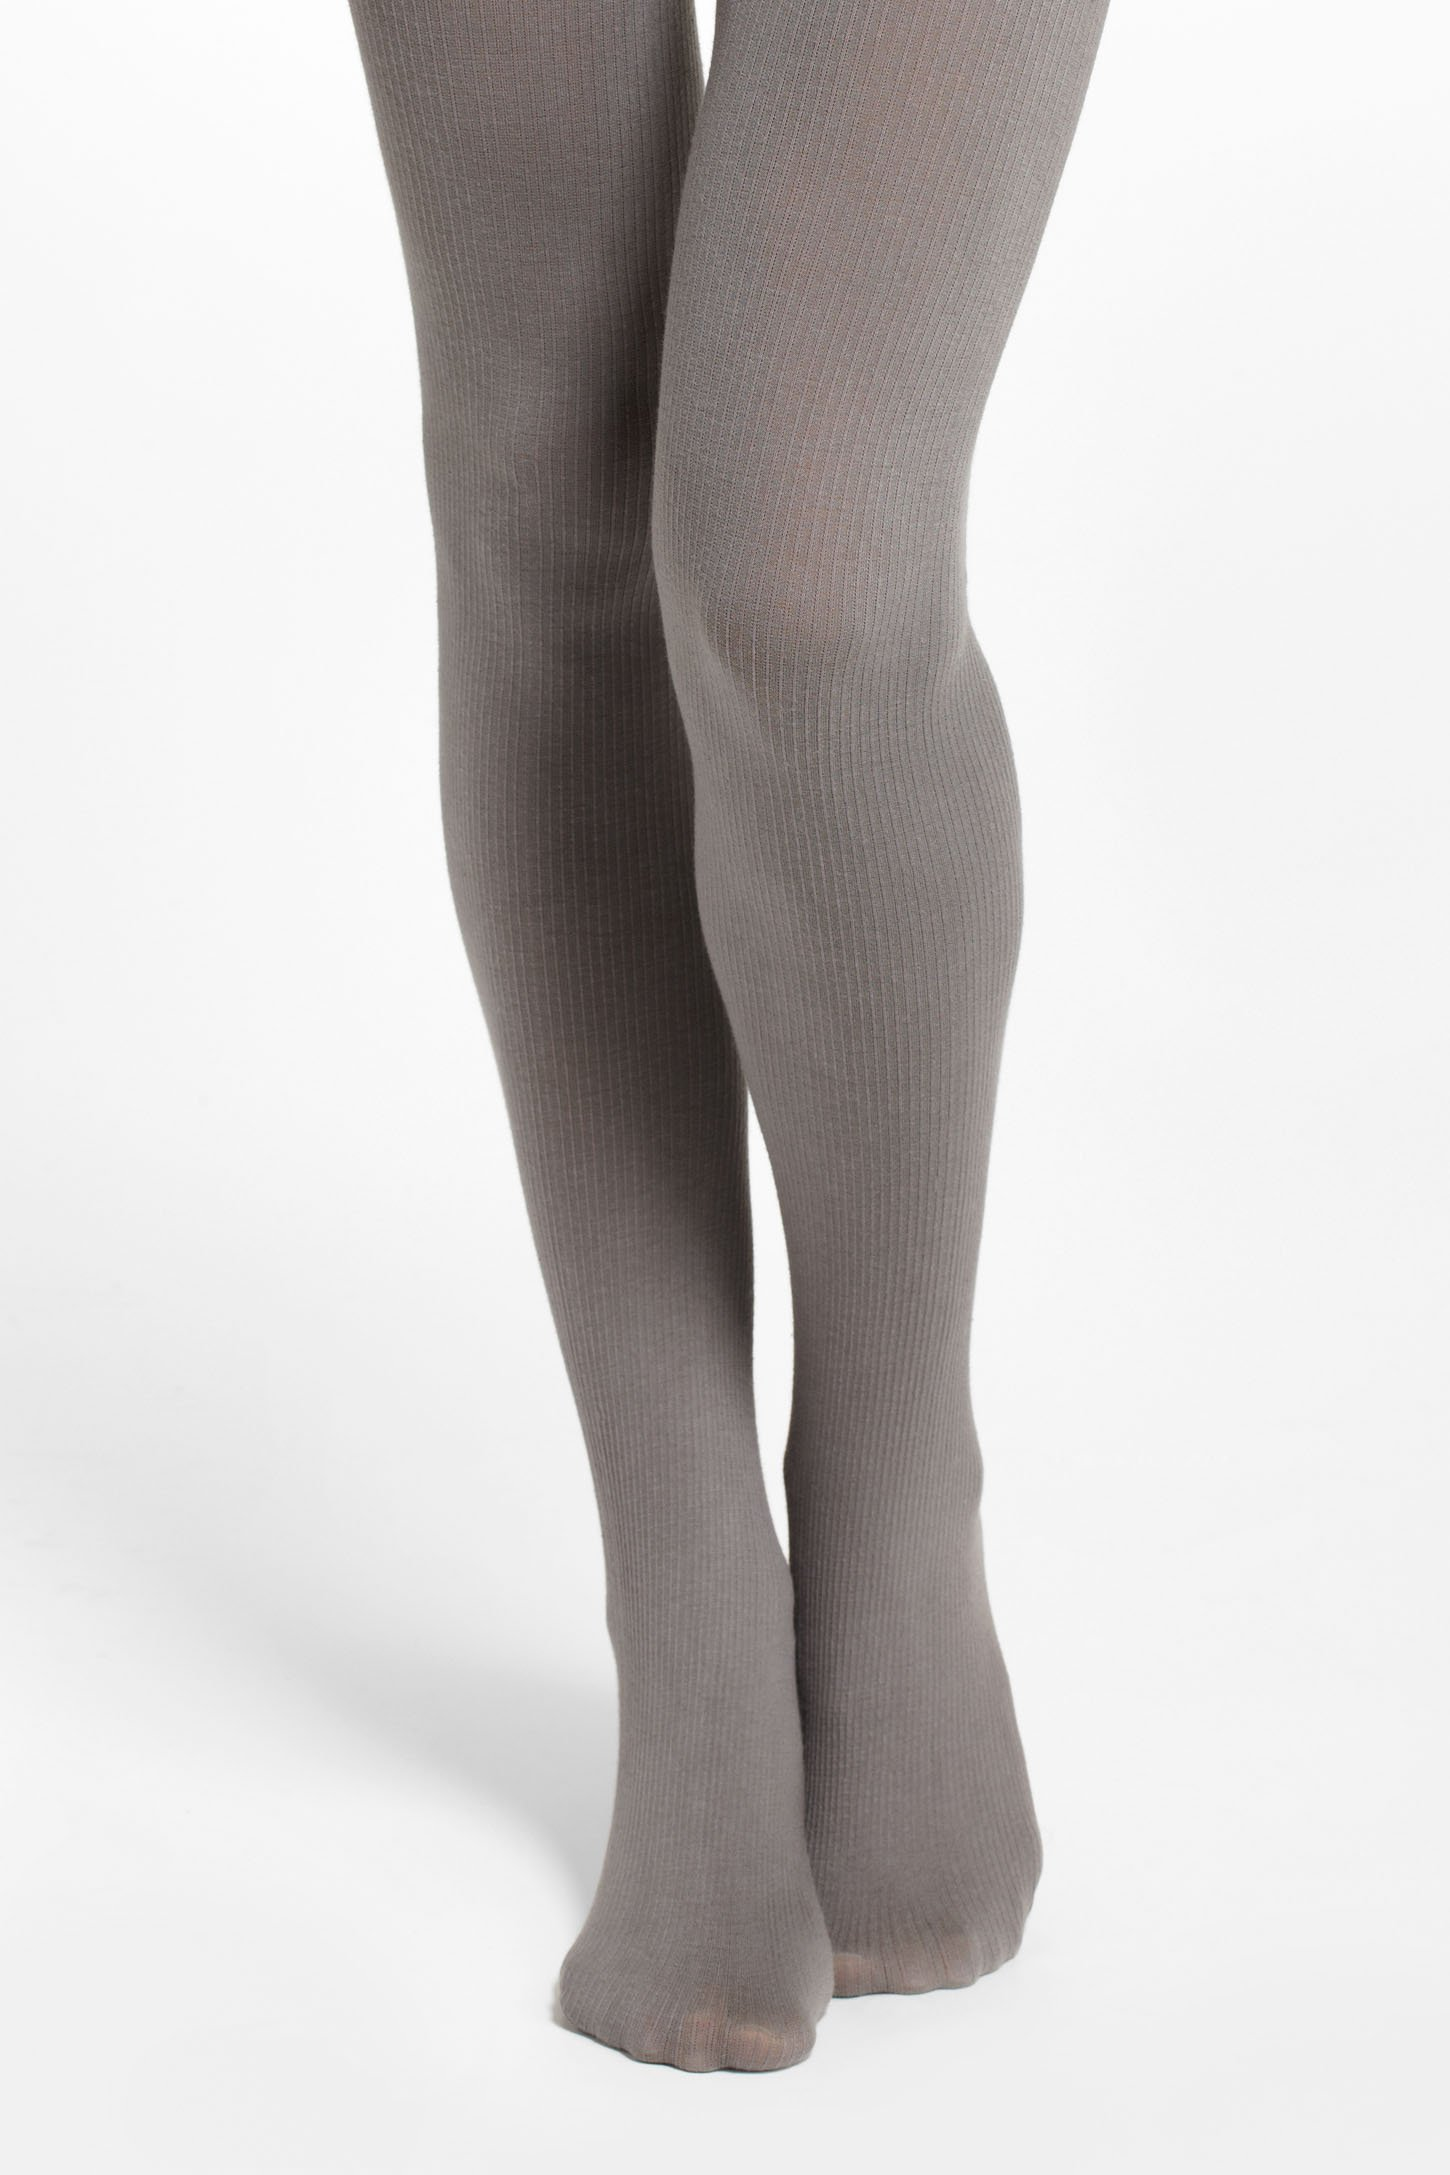 anthropologie chromatic ribbed tights in gray